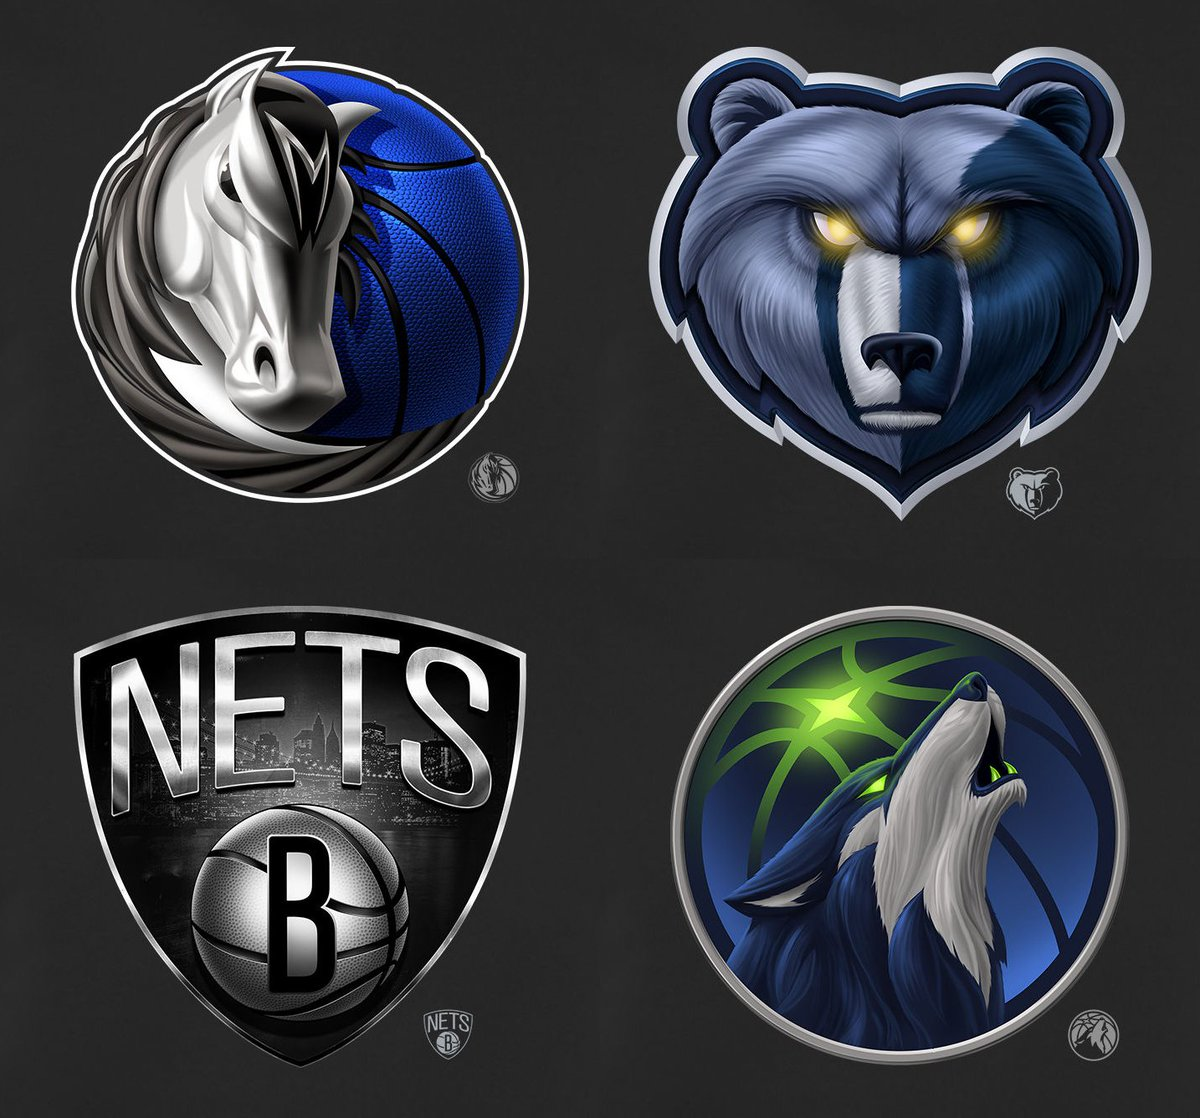 Nba Logos 2017 >> Conrad Burry On Twitter Must See Some Amazing 3d